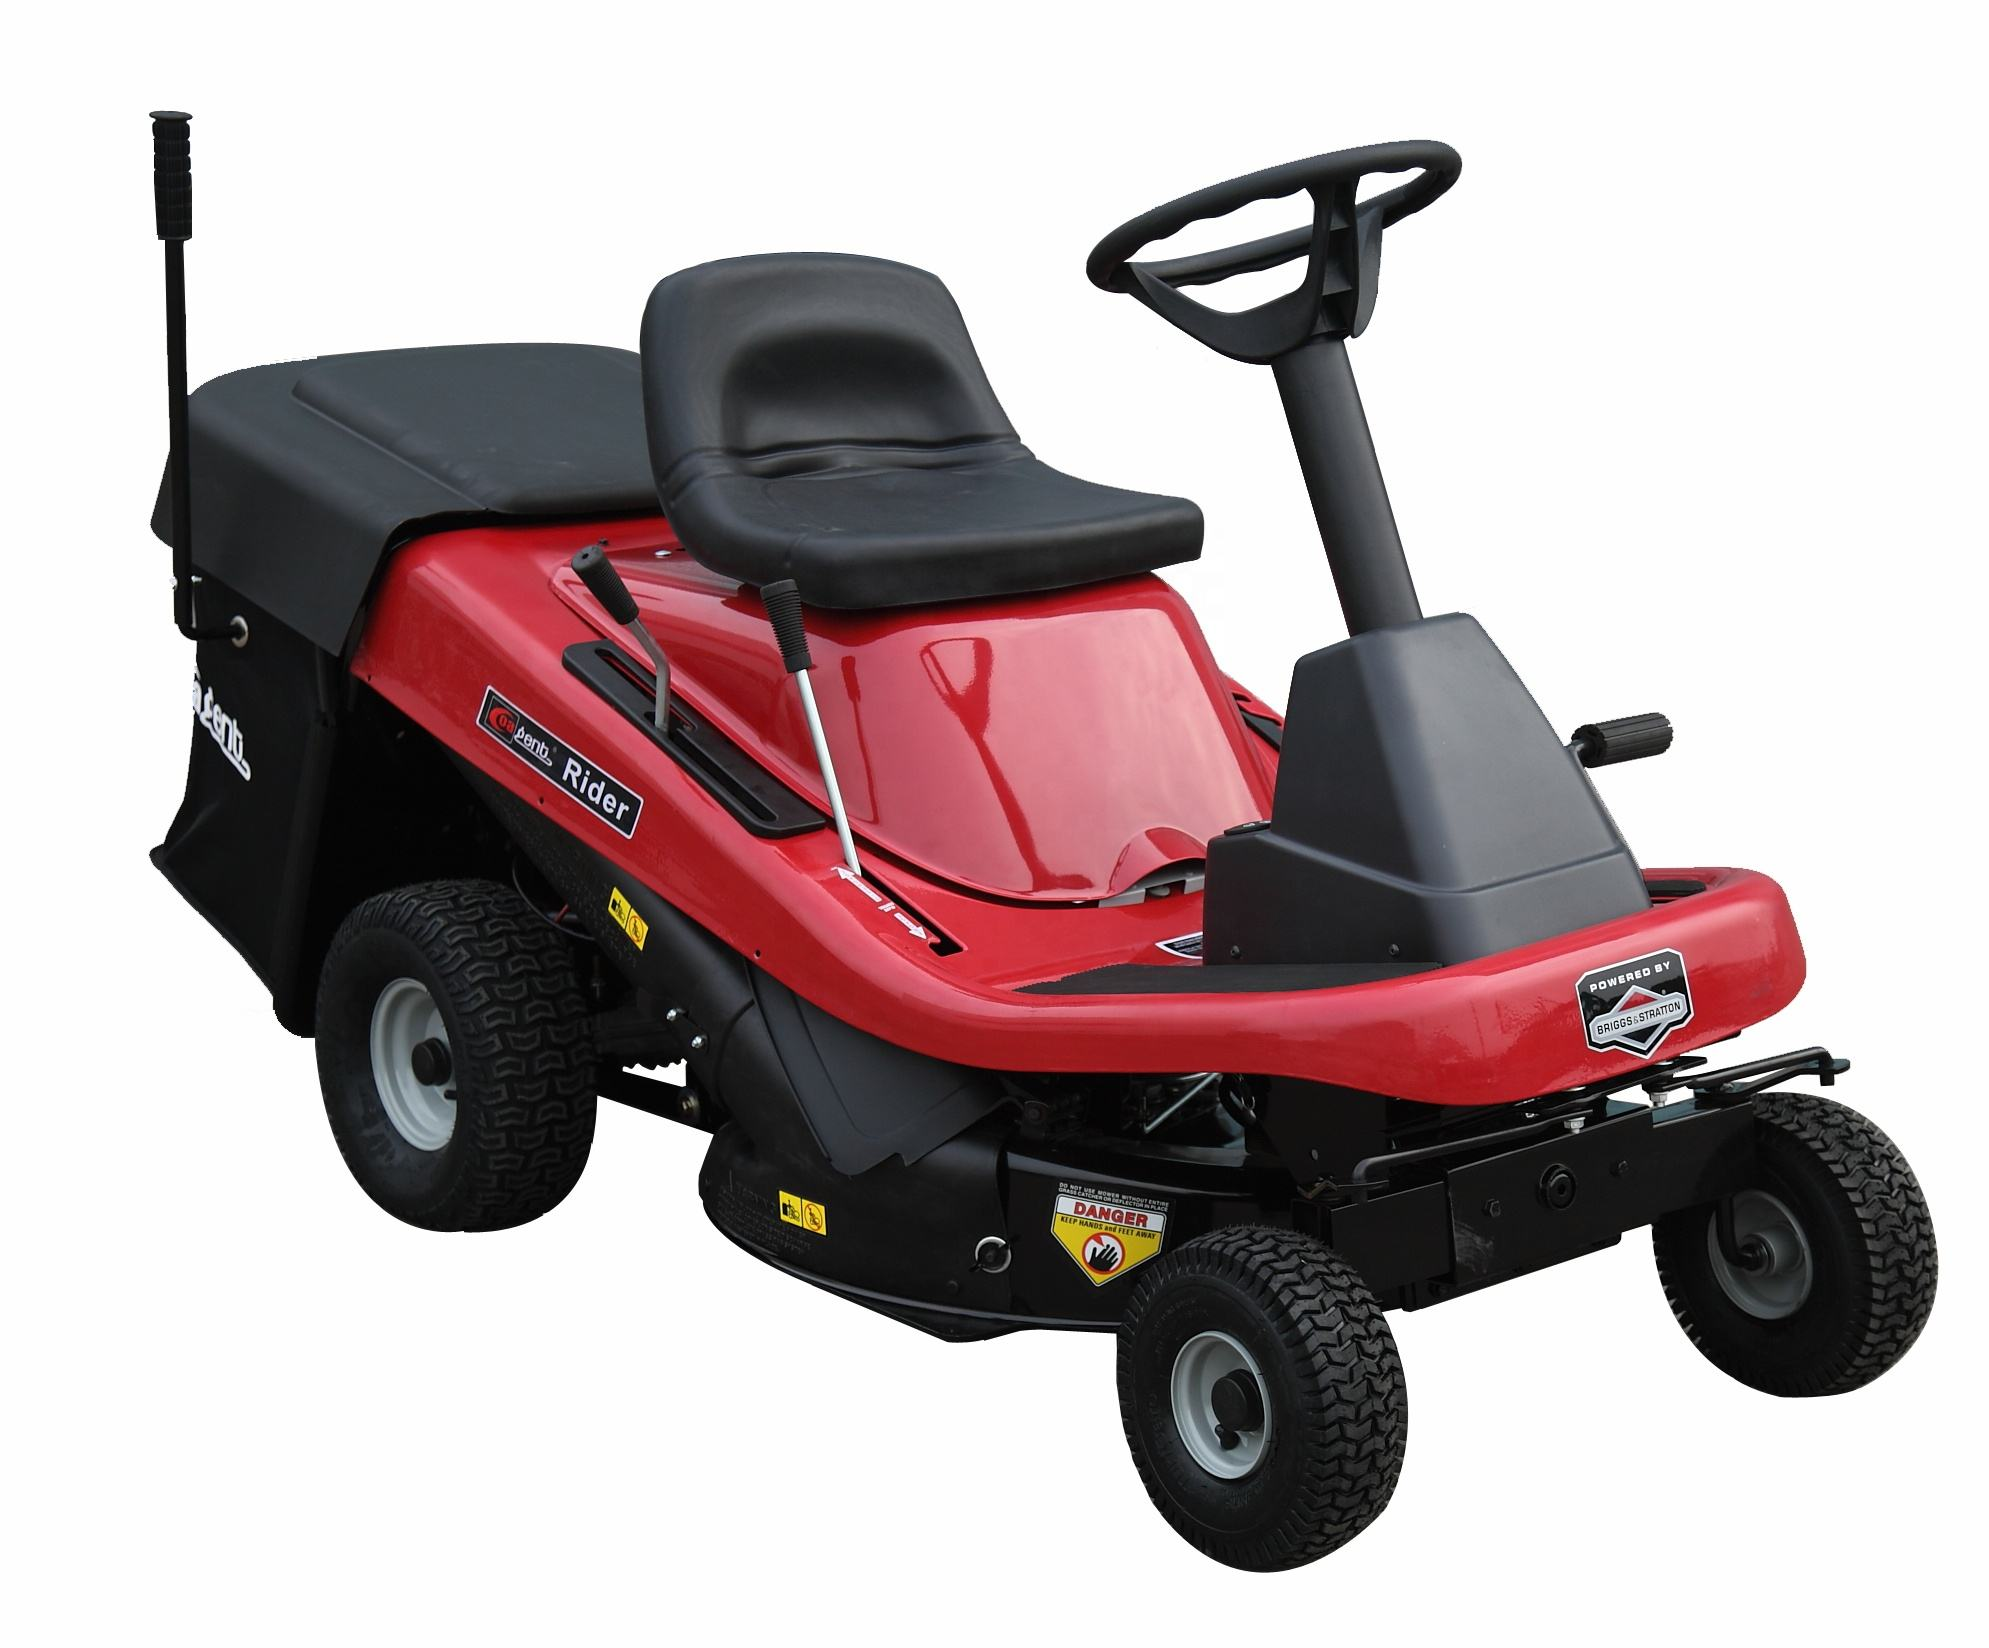 Newest Garden machine CJ30GZZRL150 Tractors Lawn Mowers of 30Inch Riding Lawn Mower In Mechanical Way With Locin 15HP 432CC eng